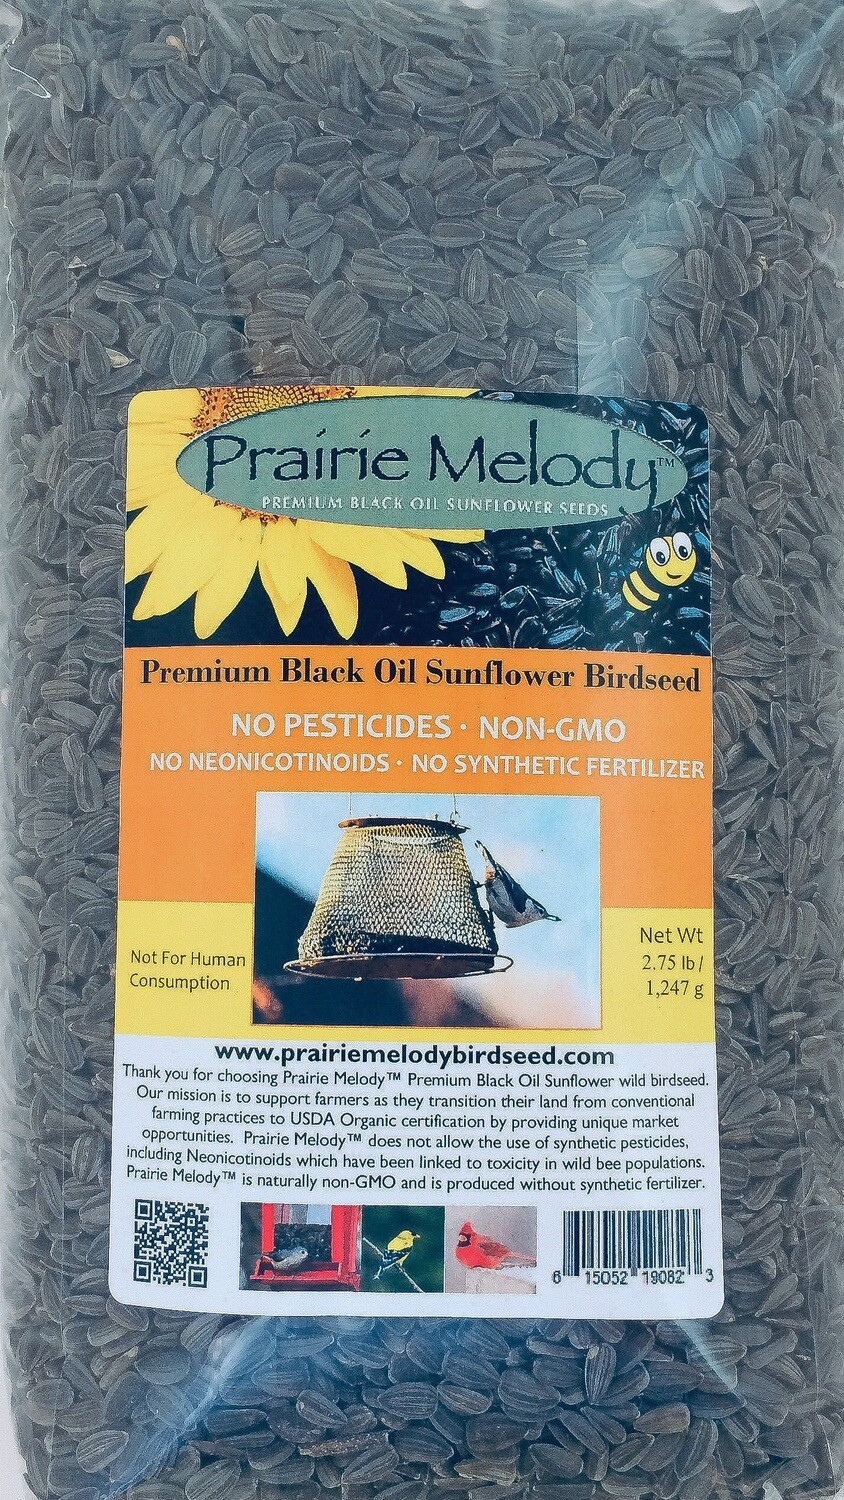 ** FREE SHIPPING ** Premium Black Oil Sunflower Birdseed, Pesticide Free - 2.75 lbs Clear Bag